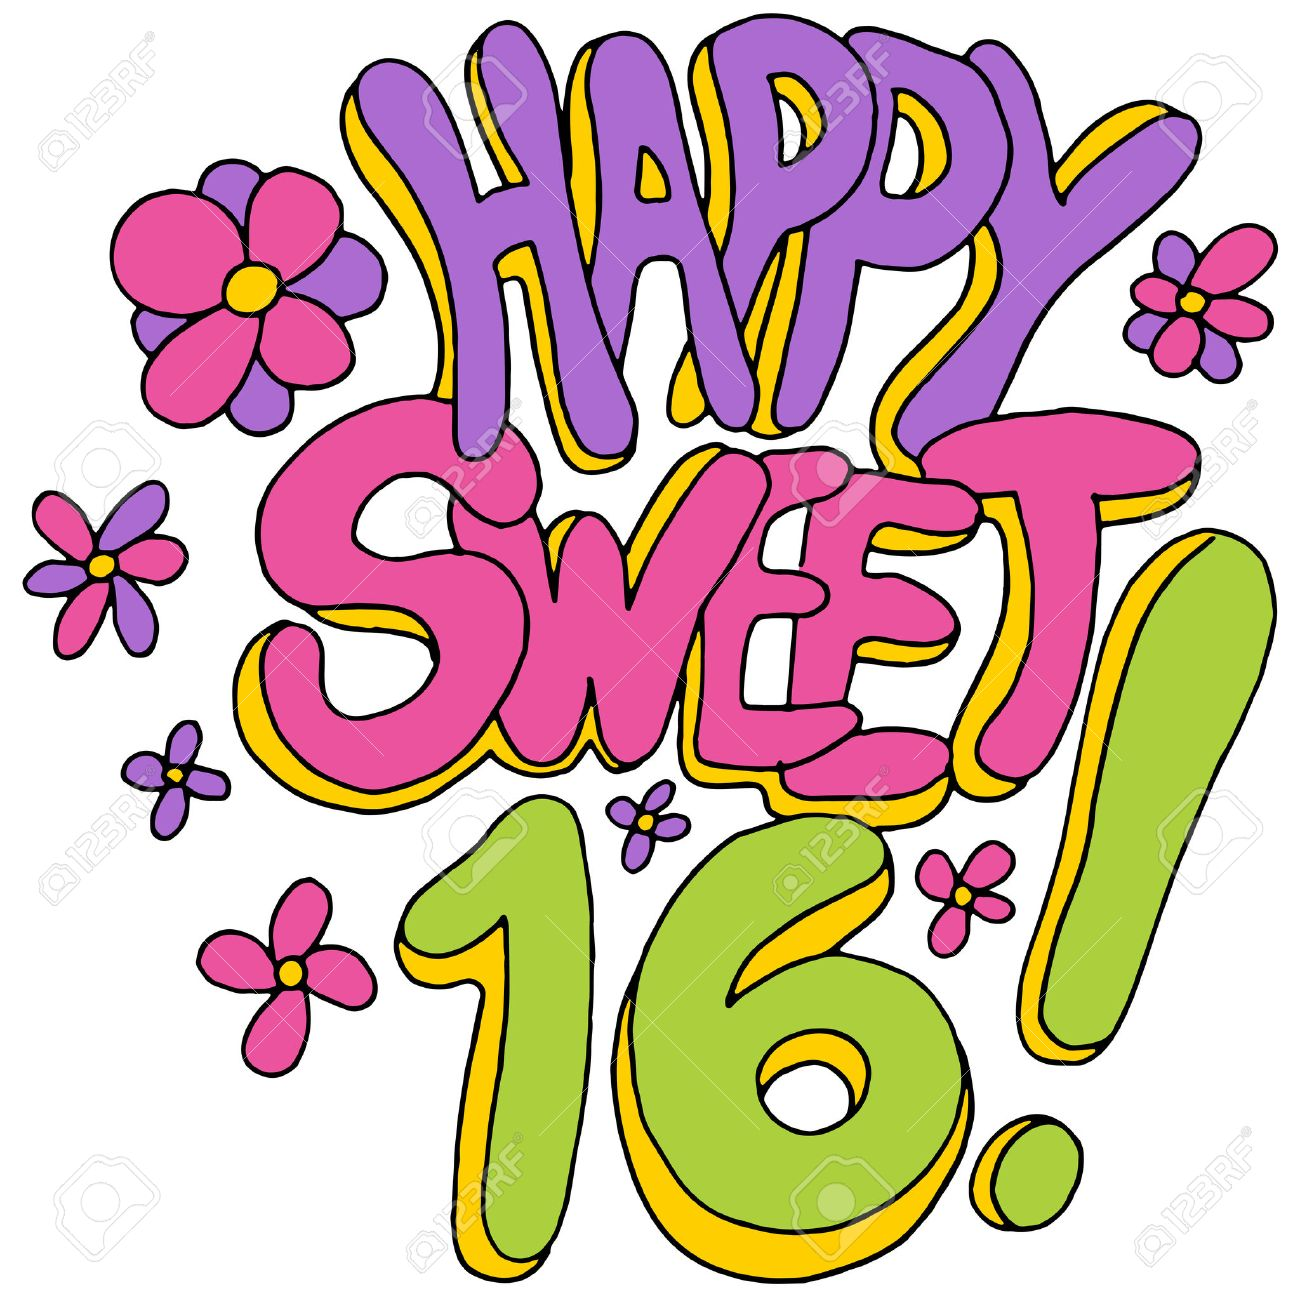 an image of a happy sweet sixteen message royalty free cliparts rh 123rf com sweet sixteen clipart sweet sixteen clip art free